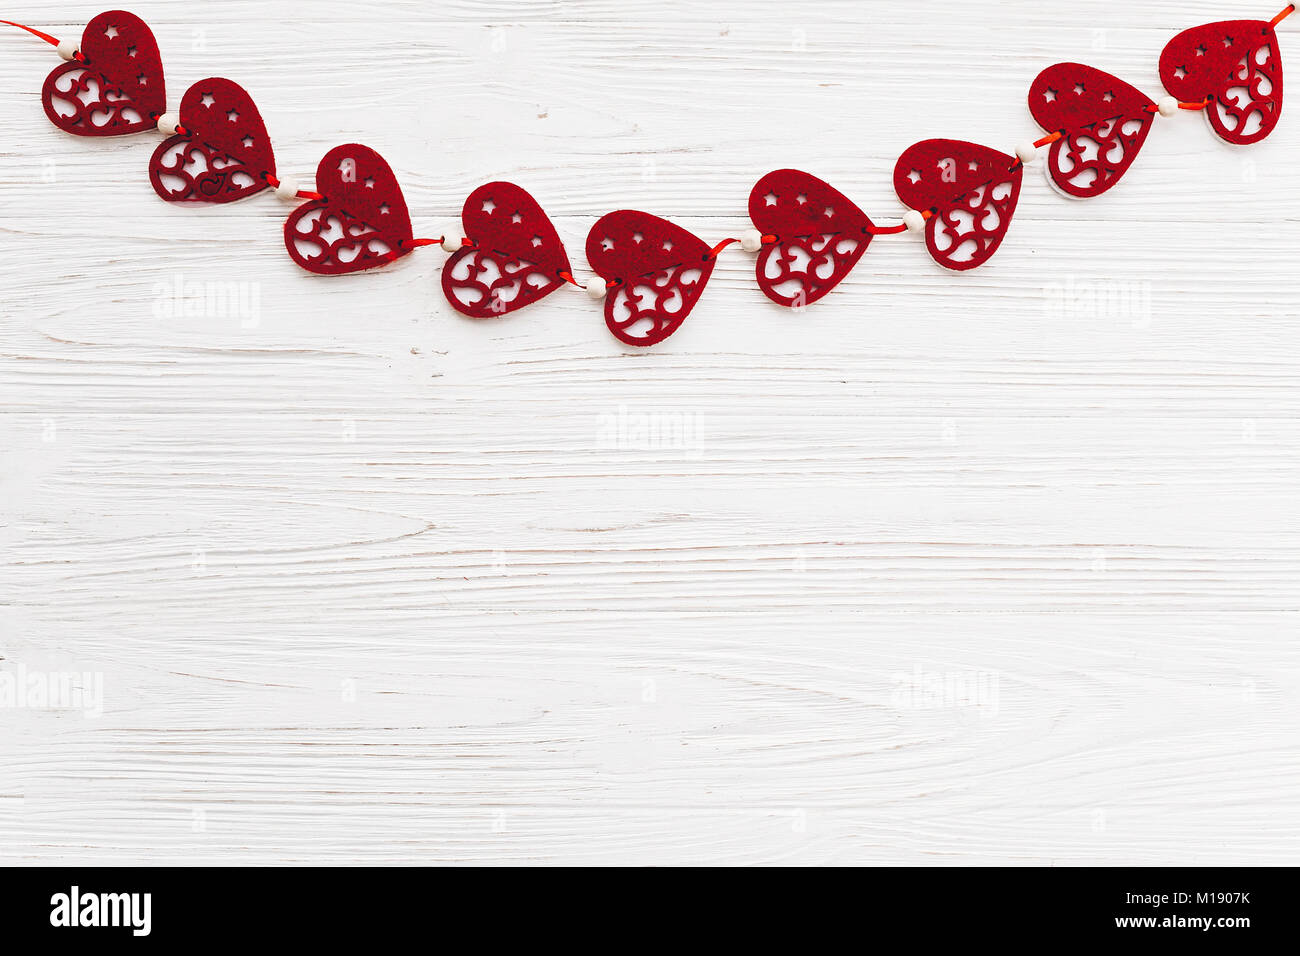 Valentine S Day Concept Stylish Red Hearts Border On White Rustic